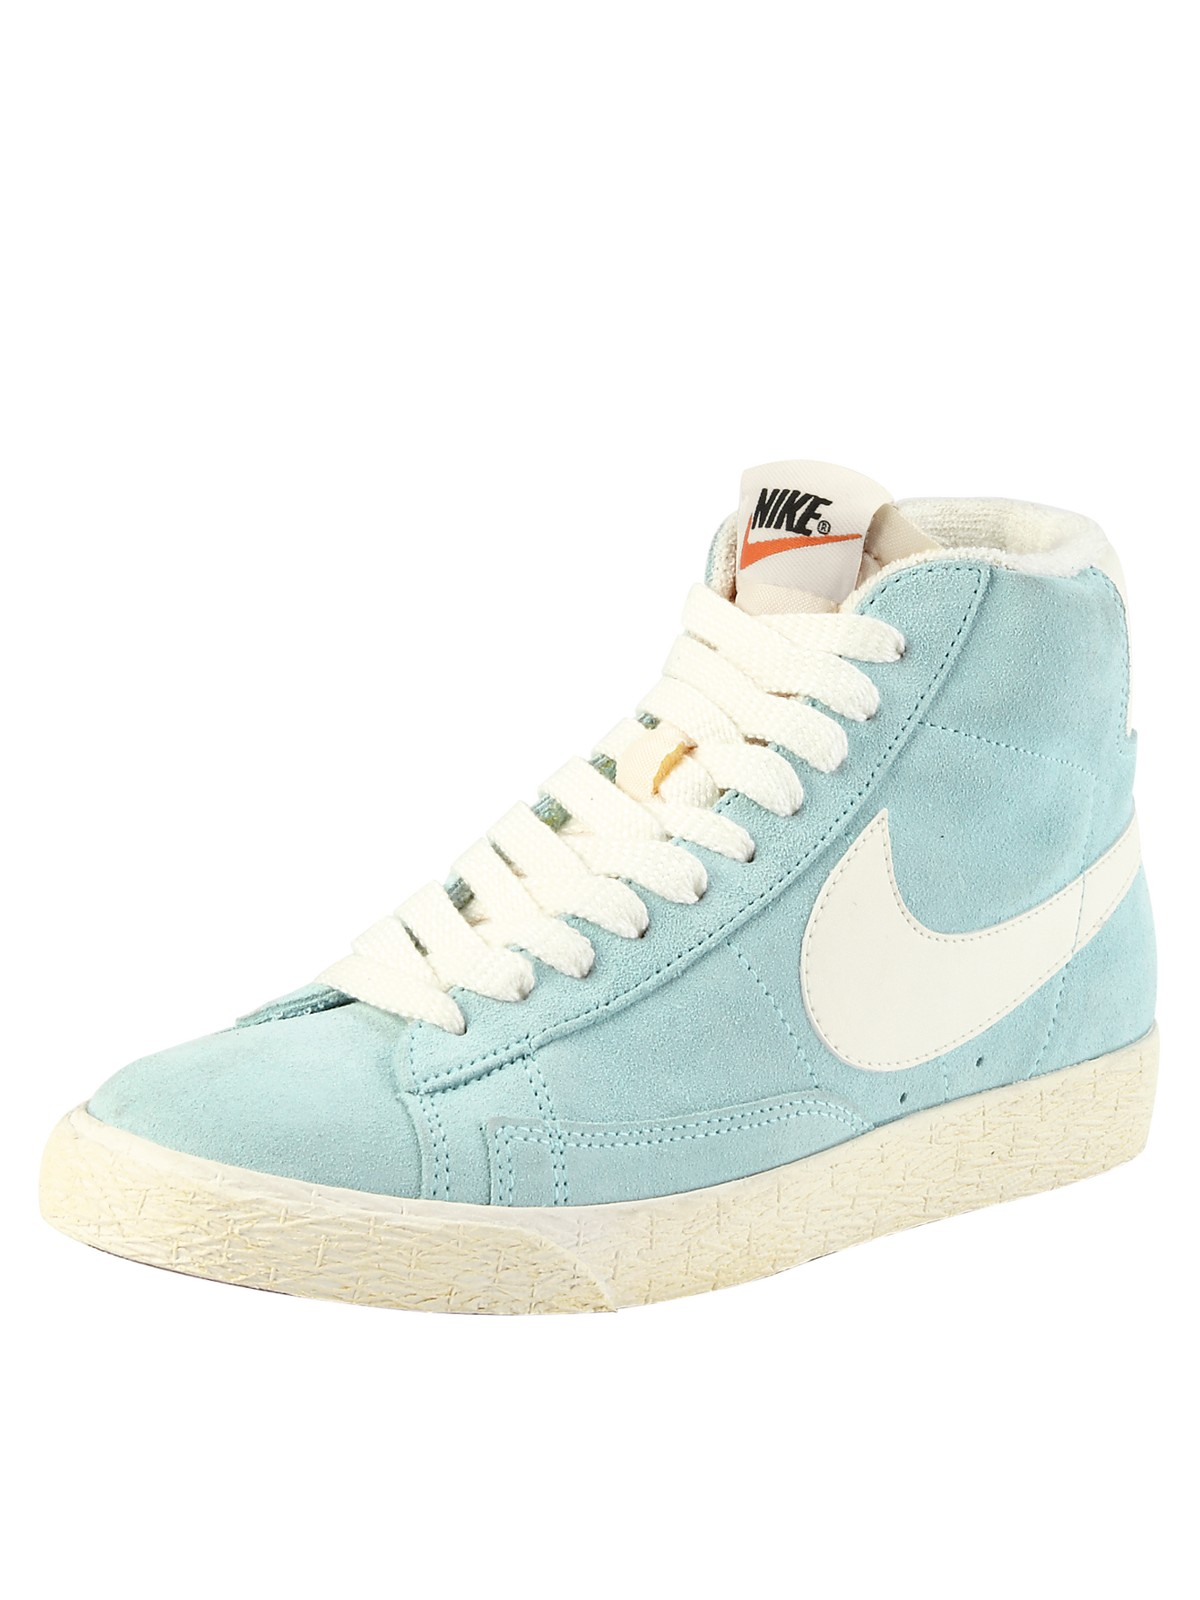 nike air max uptempo 95 chaussures de basket-ball - nike blazer low premium vintage light blue suede womens trainers ...